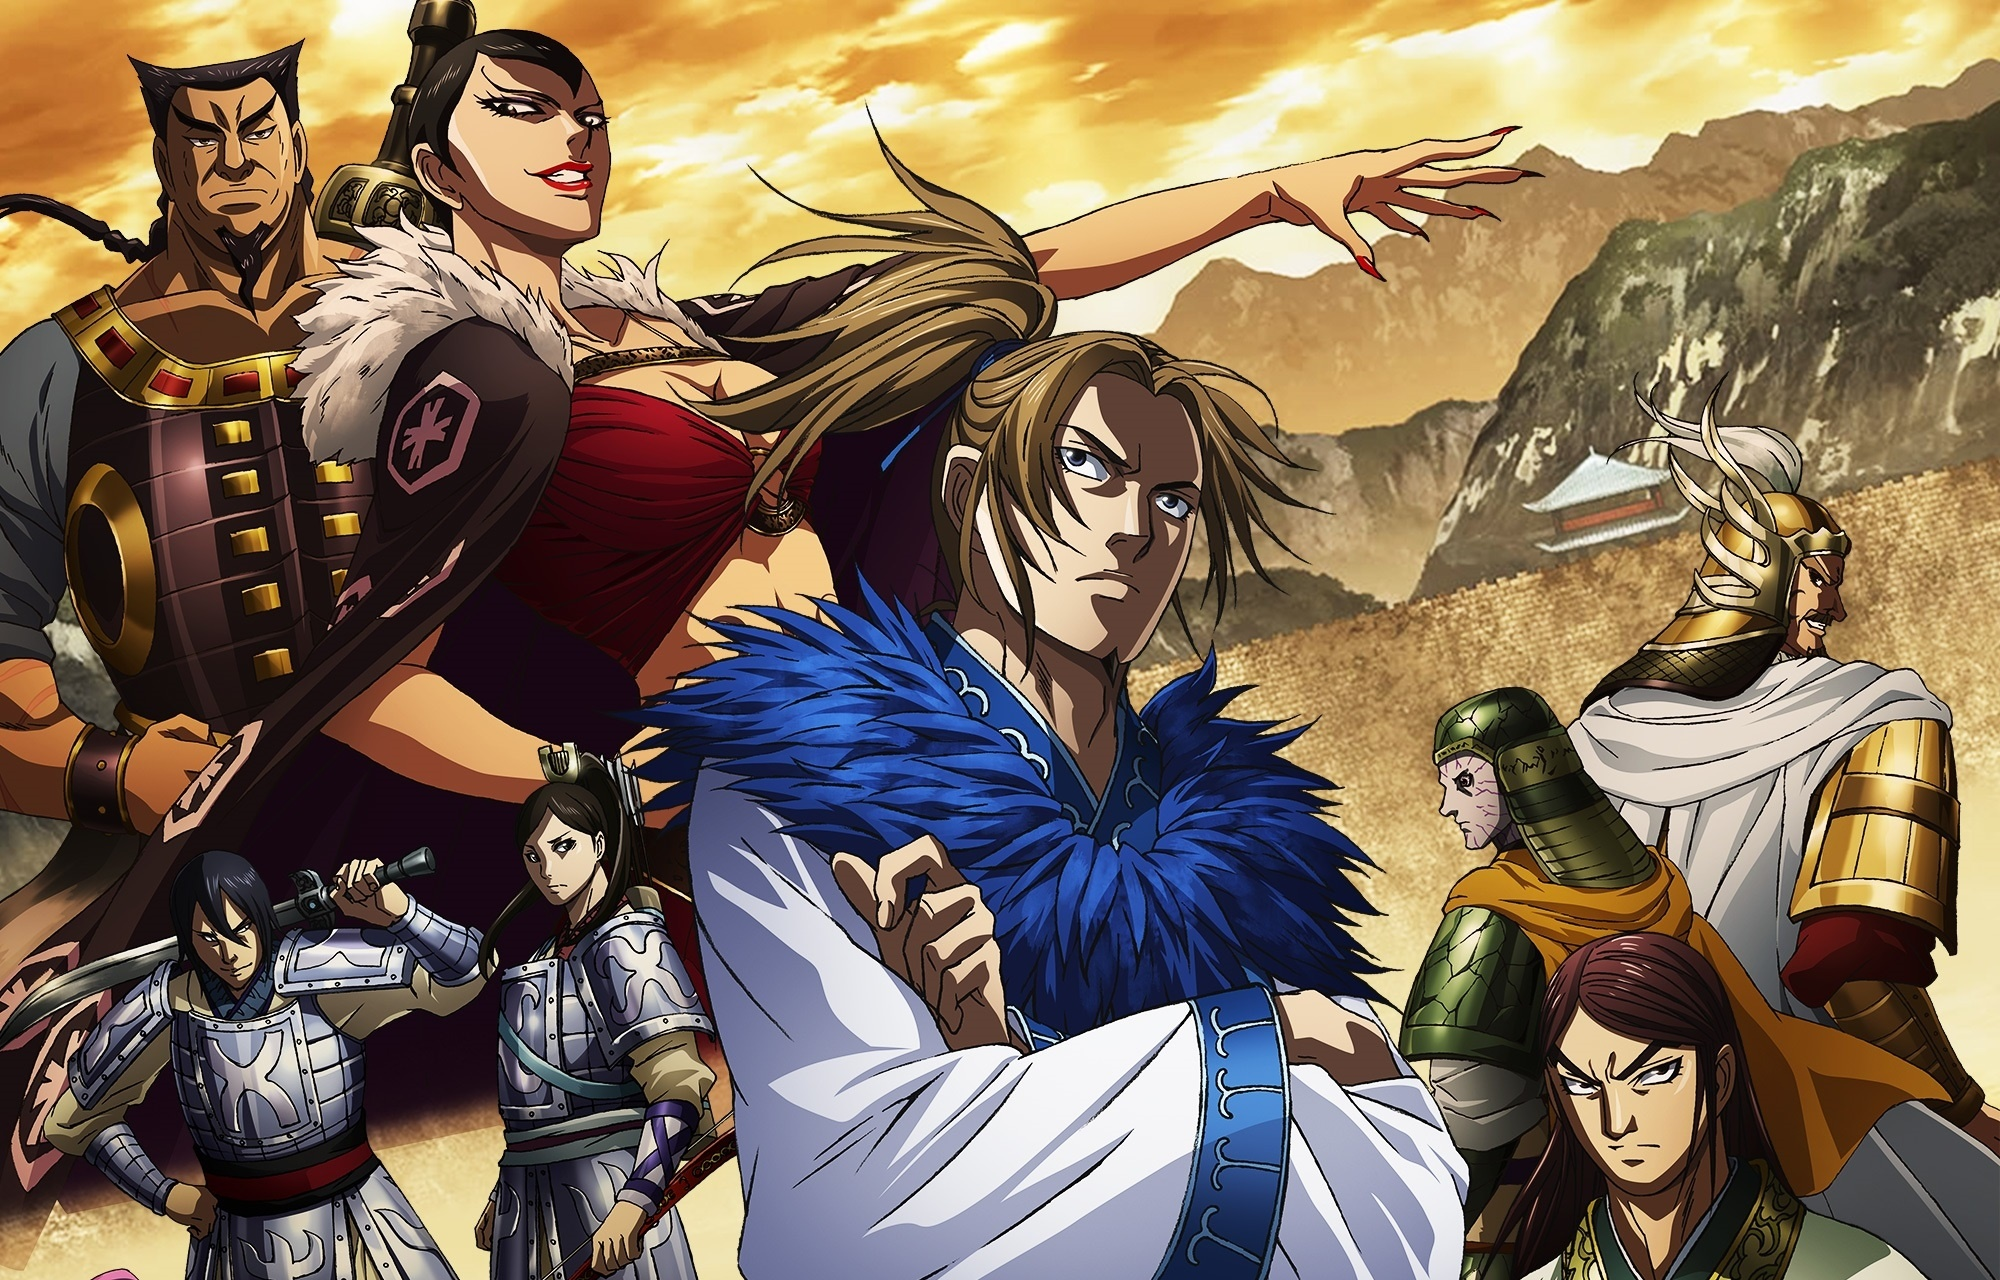 Kingdom Chapter 656 Read Online, Full Summary, Spoilers, Raw Scans Leaks and Manga Updates